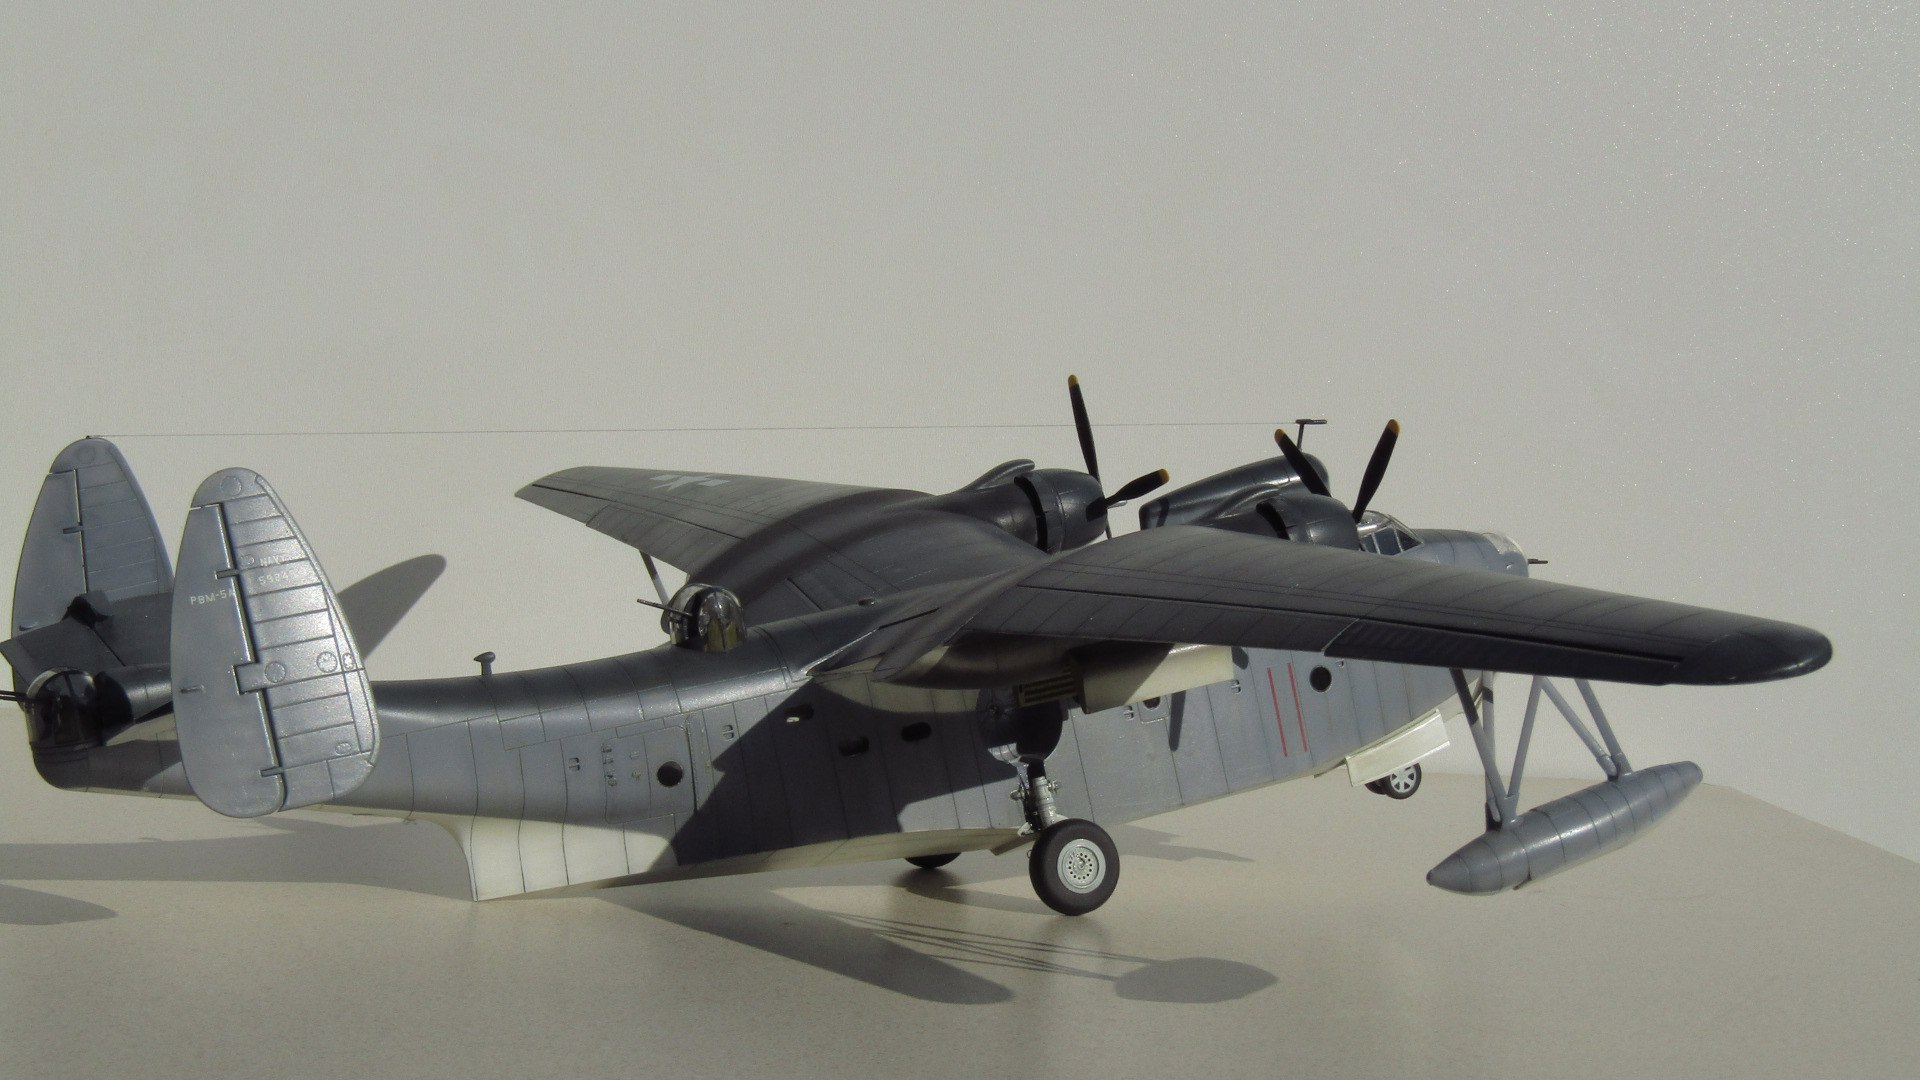 PBM-5 A MARINER 1/72 (MINICRAFT) - Страница 2 GH6Sy3Q8SqY